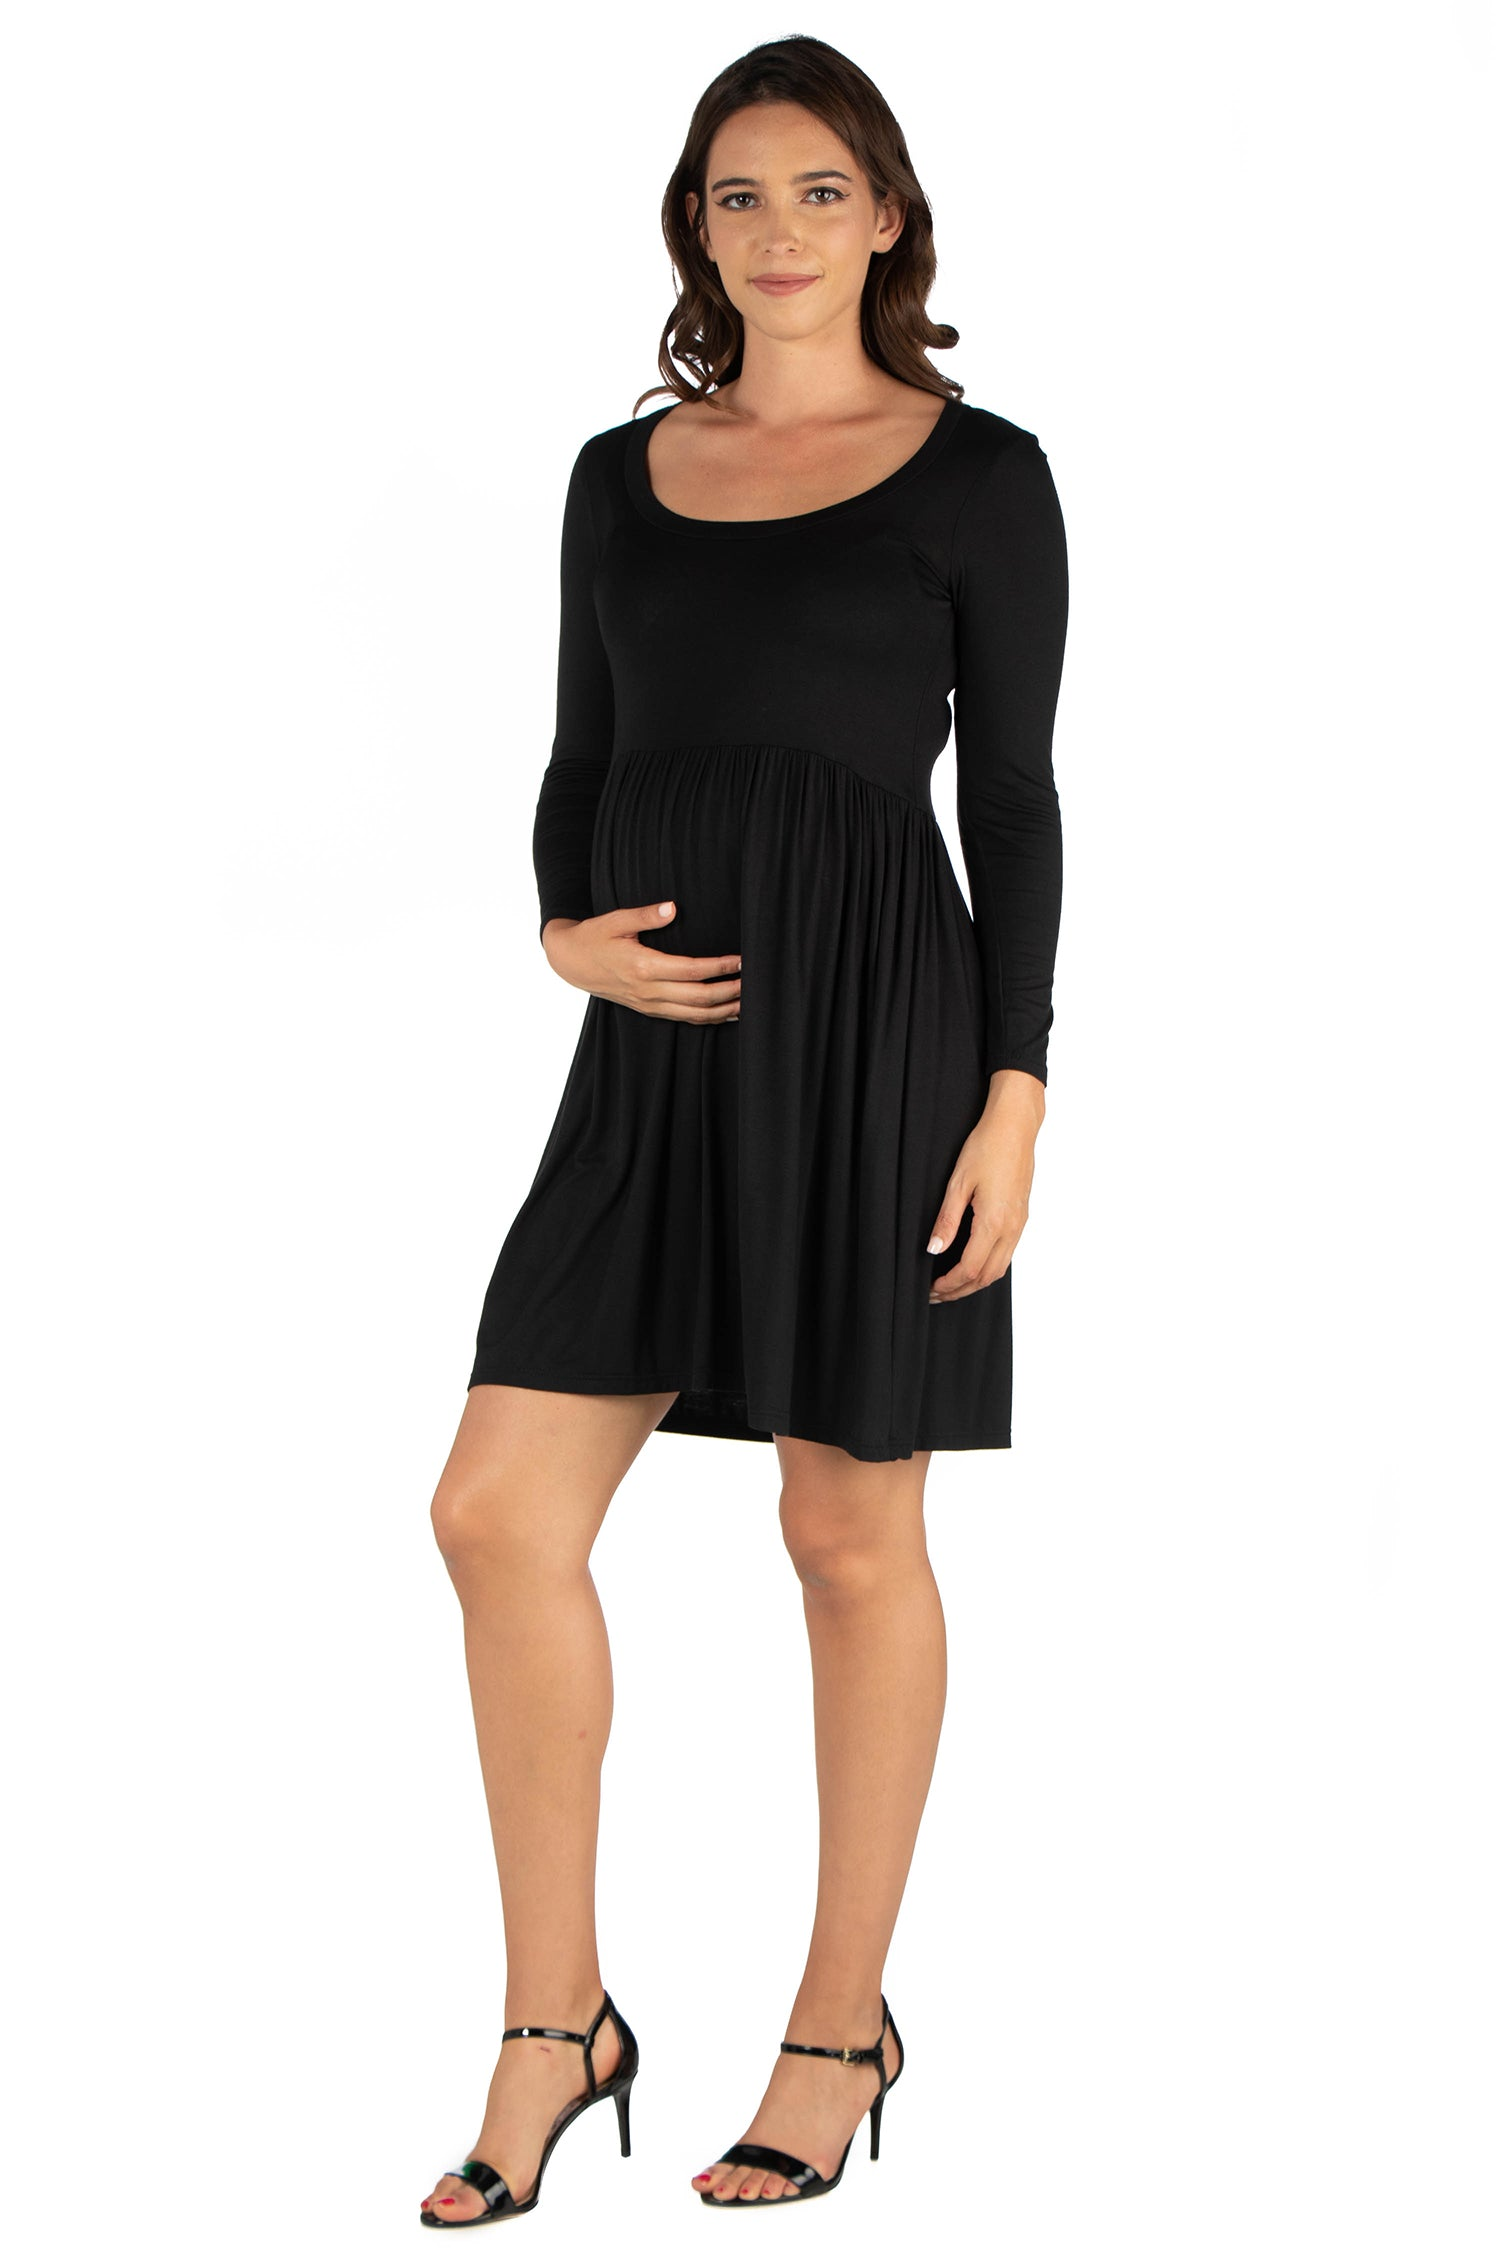 24seven Comfort Apparel Black Floral Print Long Sleeve Pleated Maternity Dress-DRESSES-24Seven Comfort Apparel-BLACK-1X-24/7 Comfort Apparel